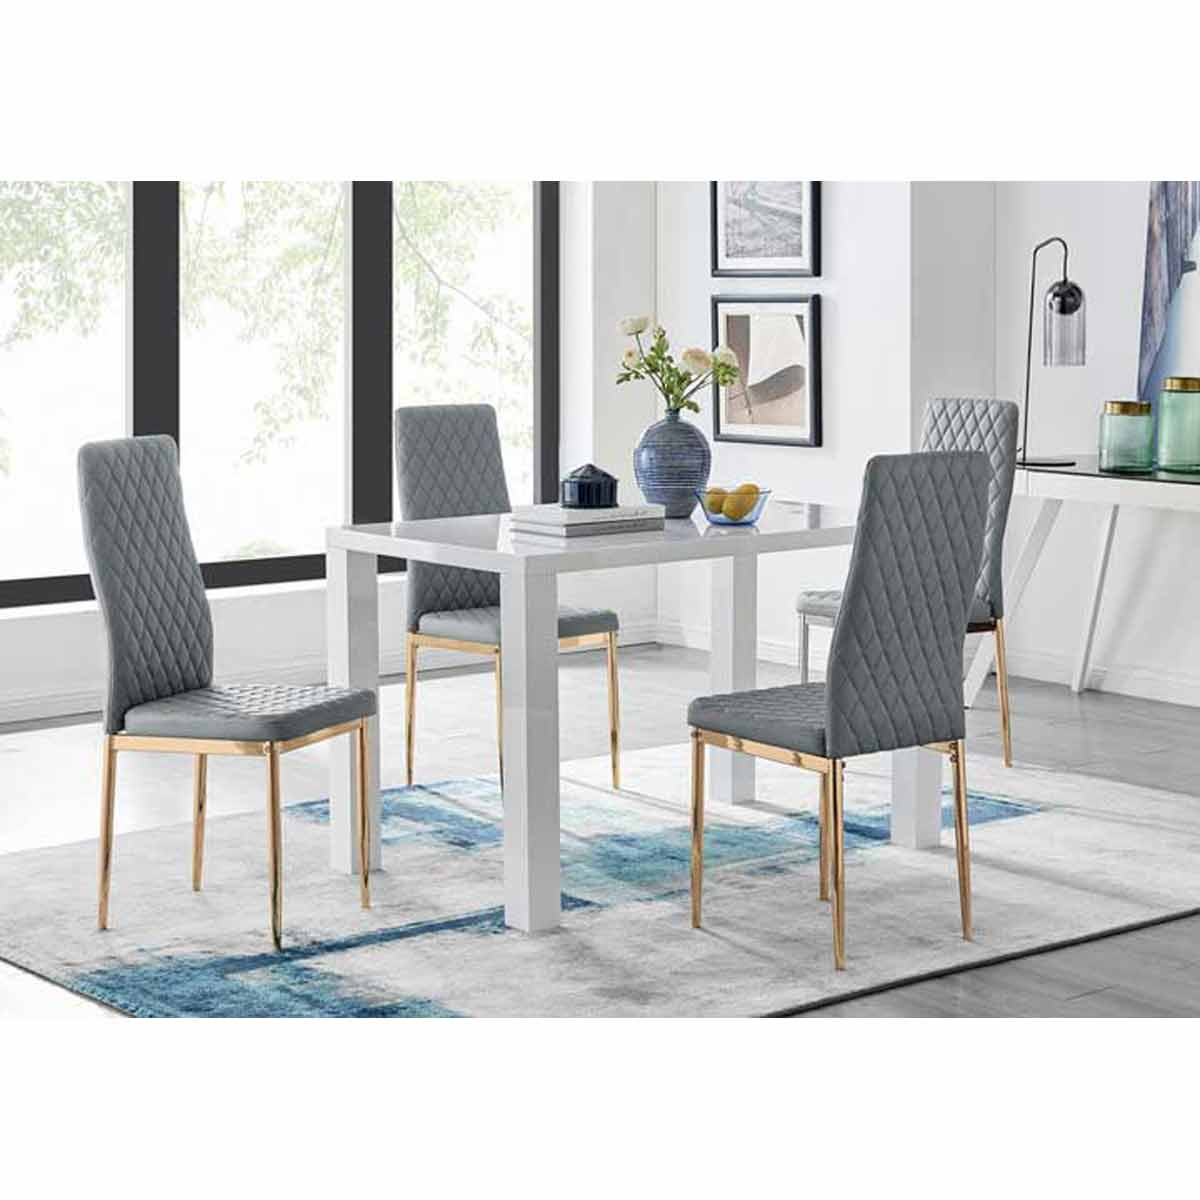 Furniture Box Pivero 4 White Dining Table and 4 Grey Gold Leg Milan Chairs